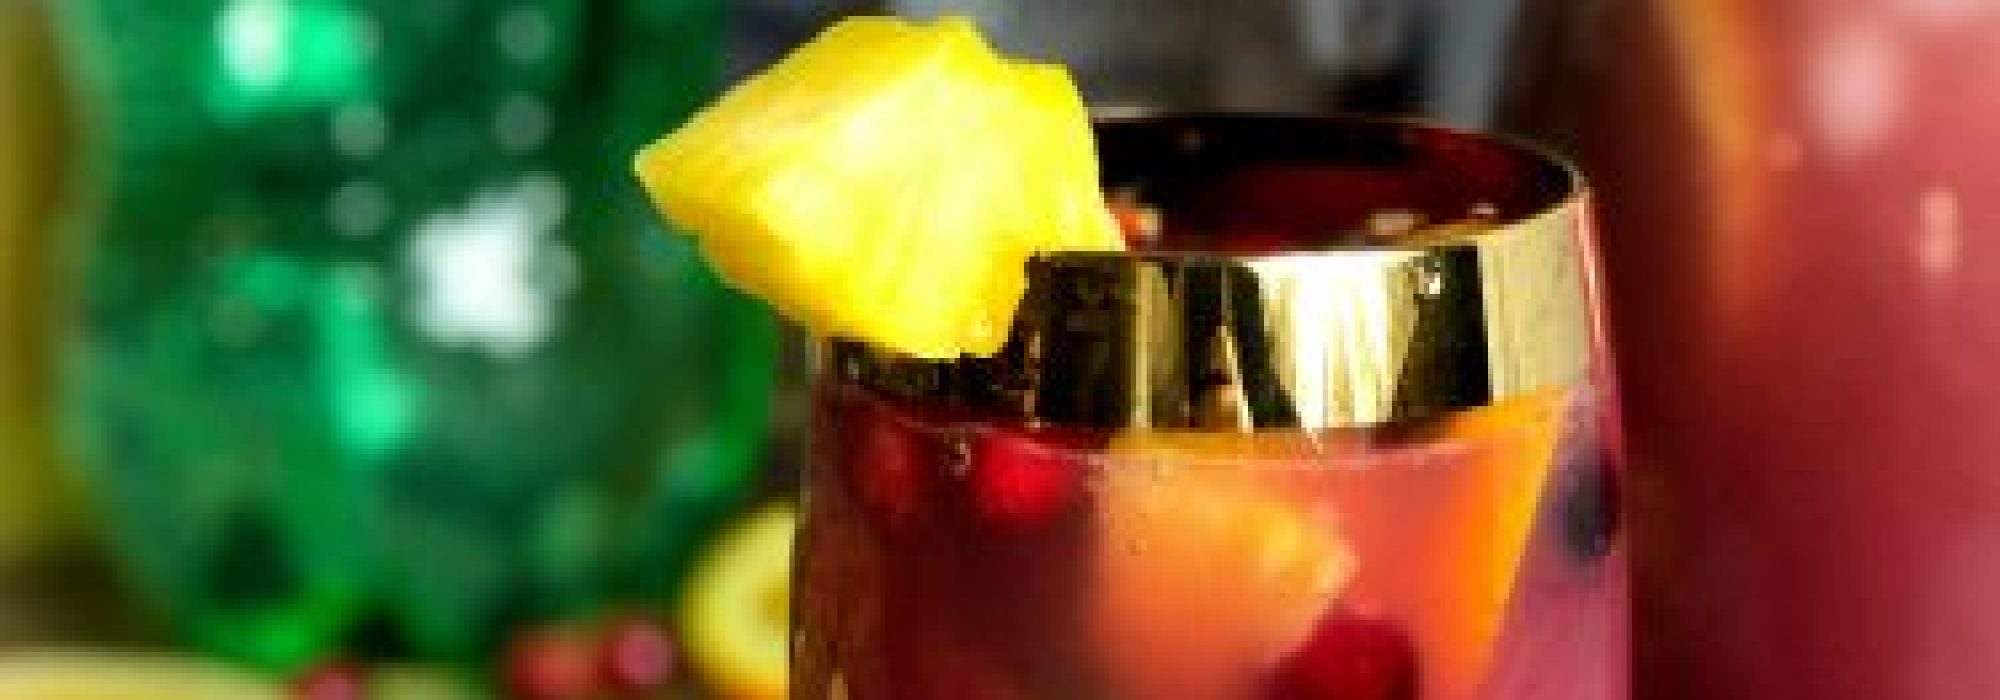 Mocktails and Cocktails: Holiday Punch and Holiday Rum Punch